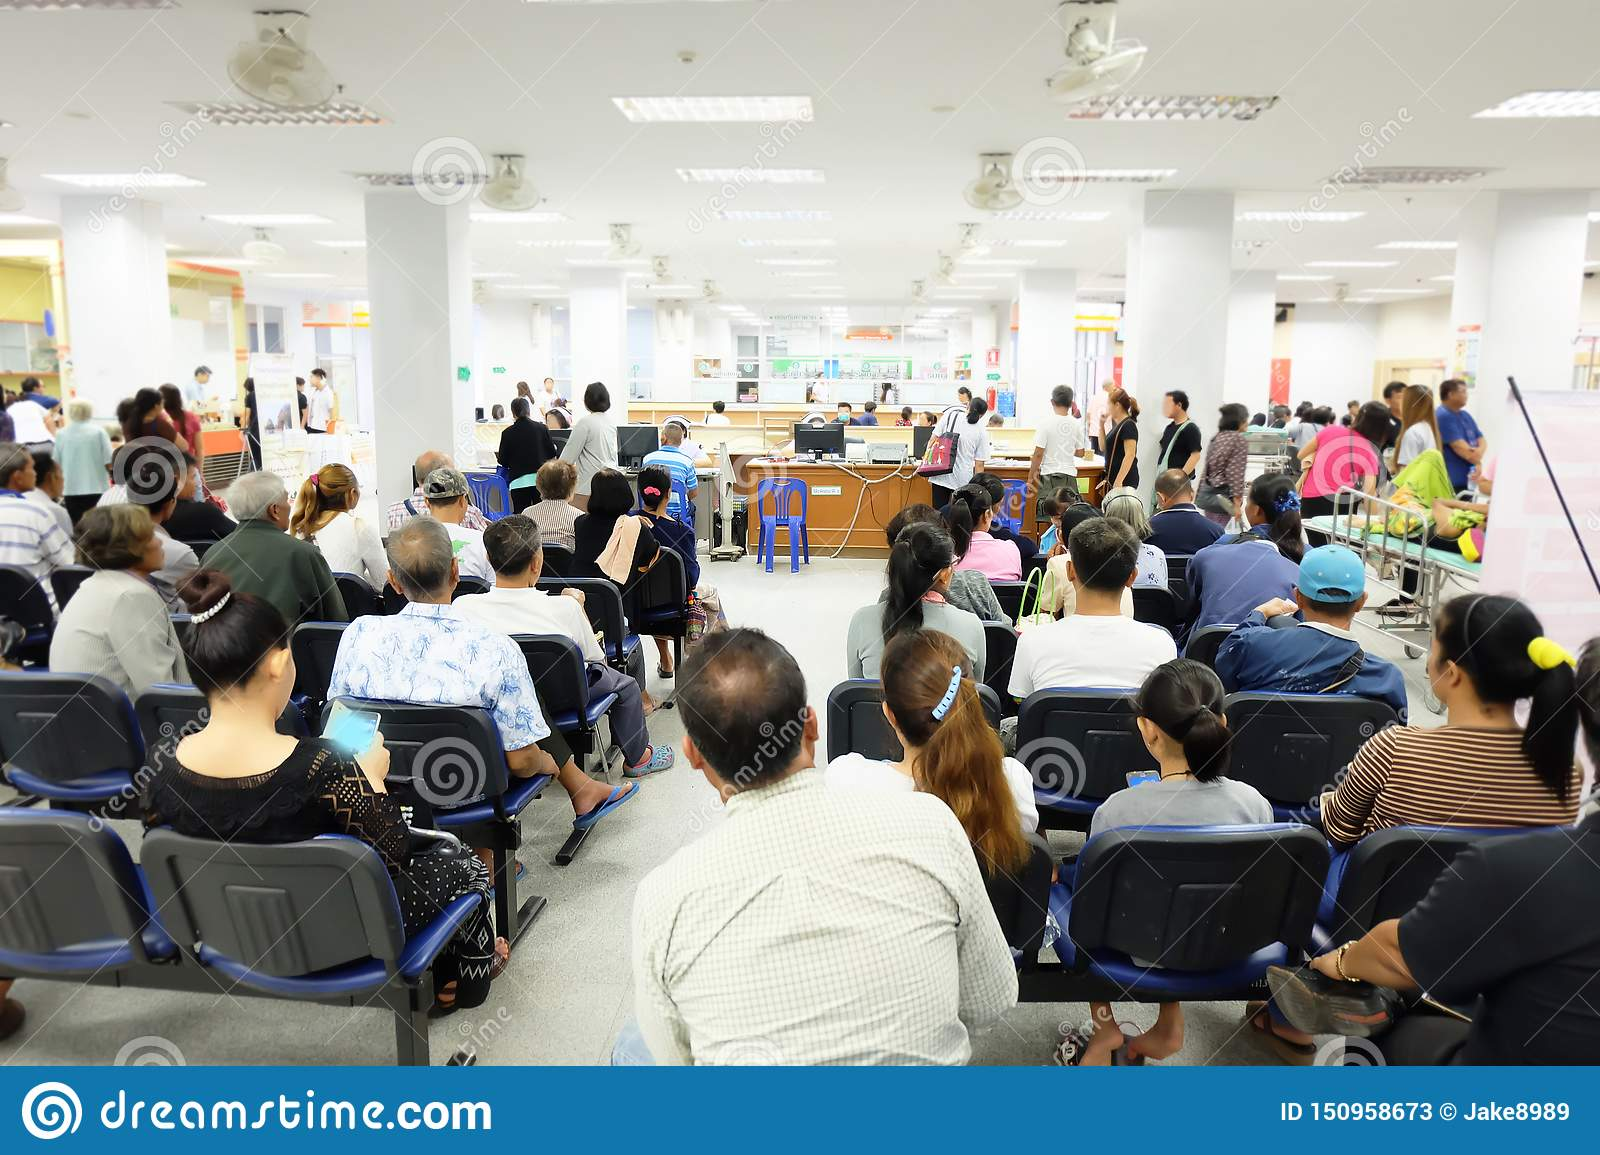 The crowd is waiting in the Asian hospital.